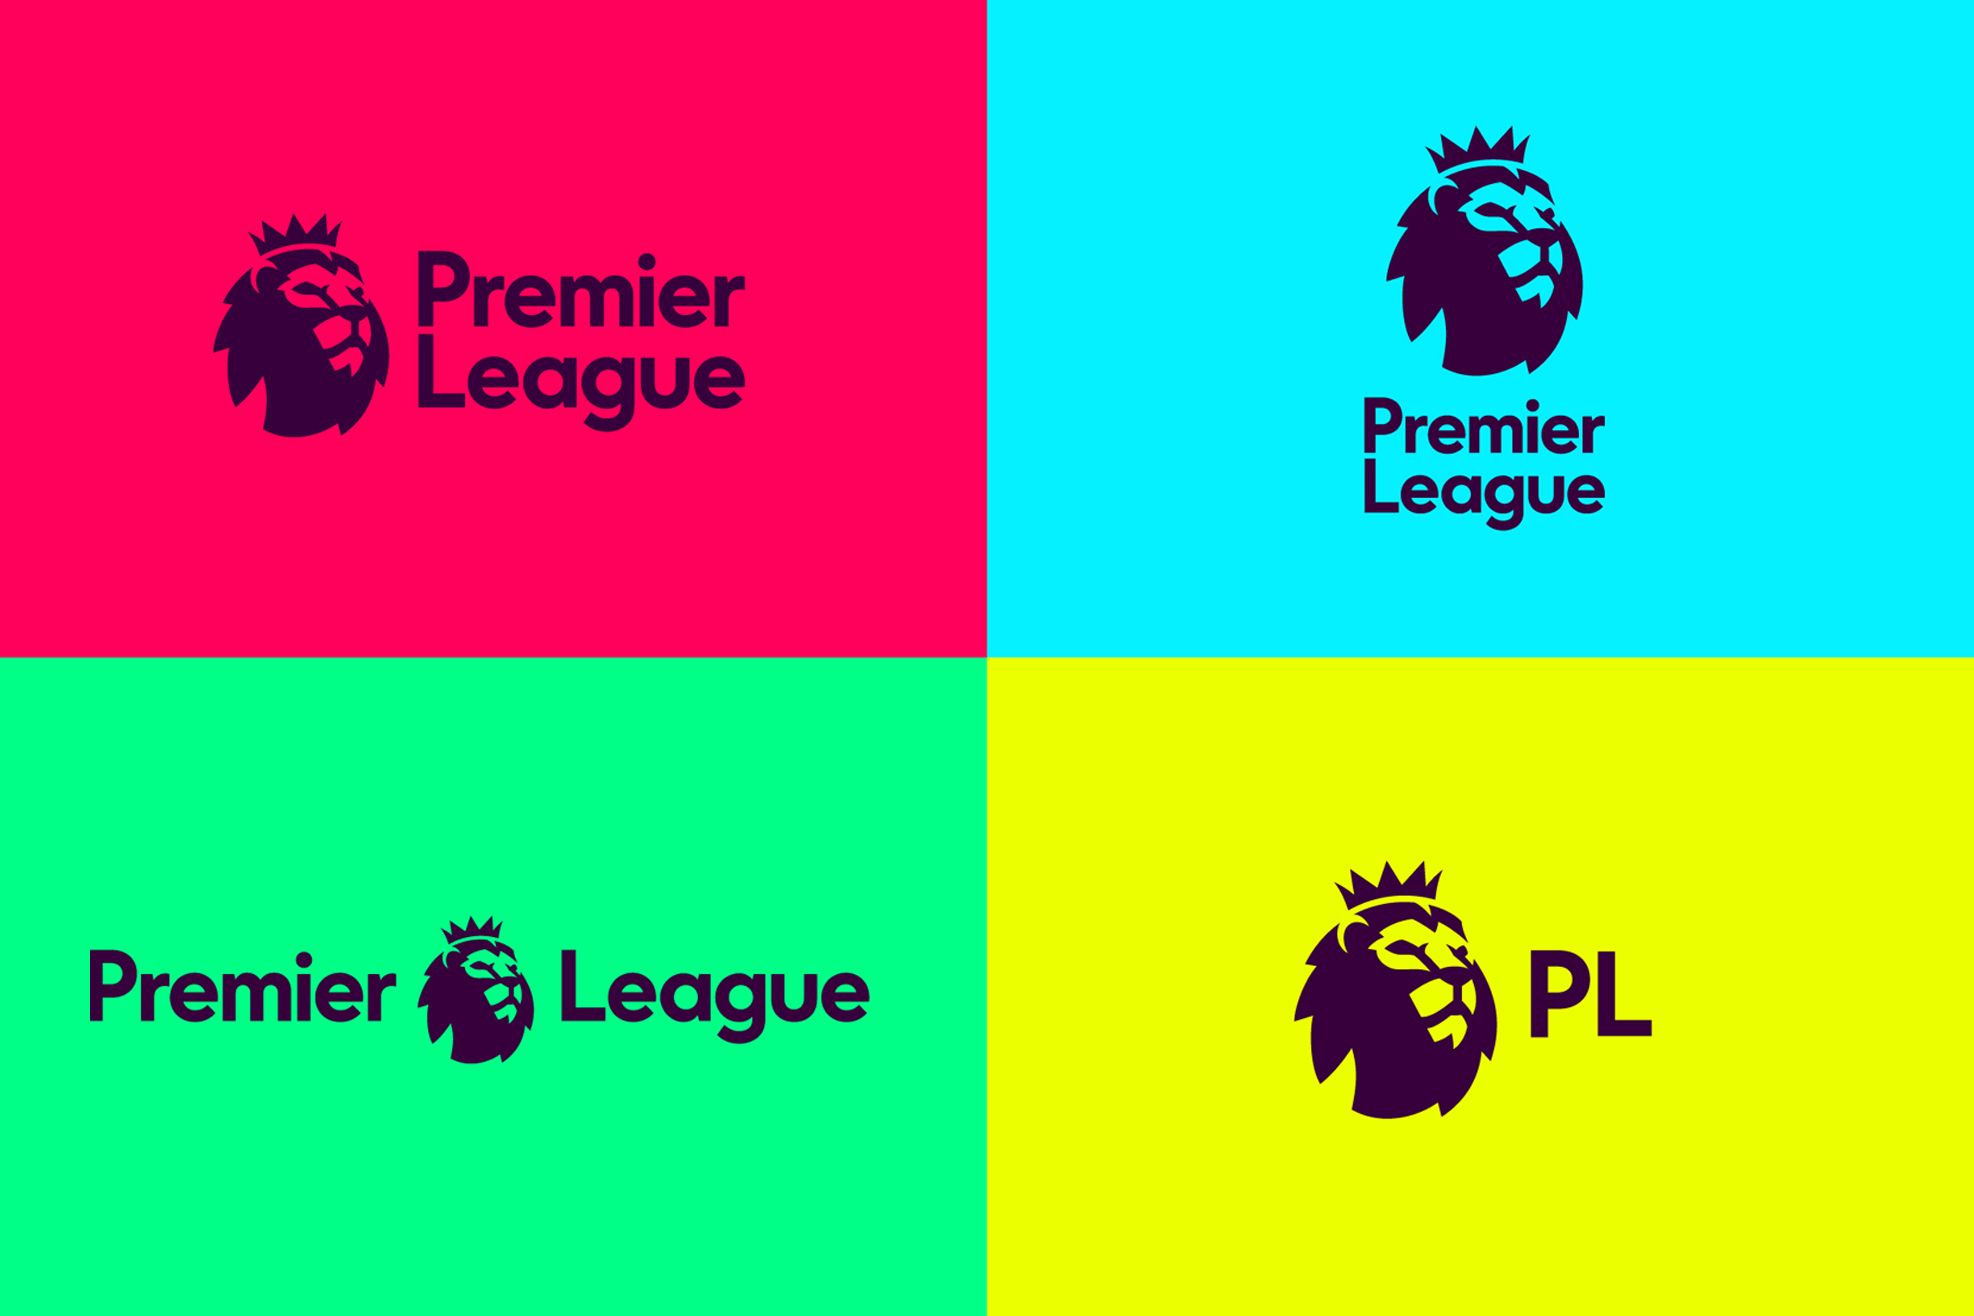 Barclays Premier League gets a rebrand 5